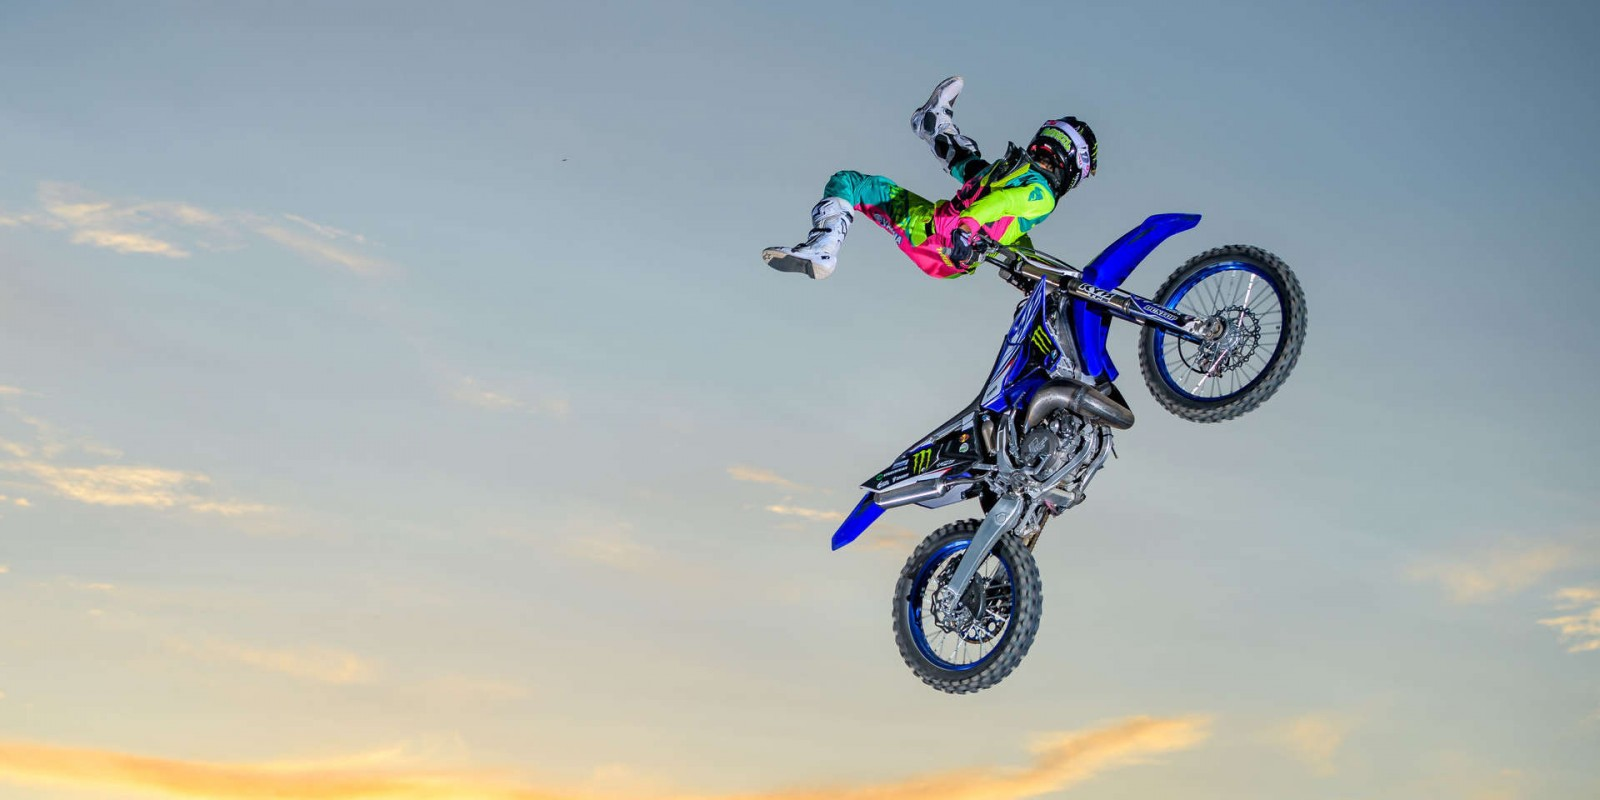 2019 Summer X-Games FMX practice in Temecula, CA.